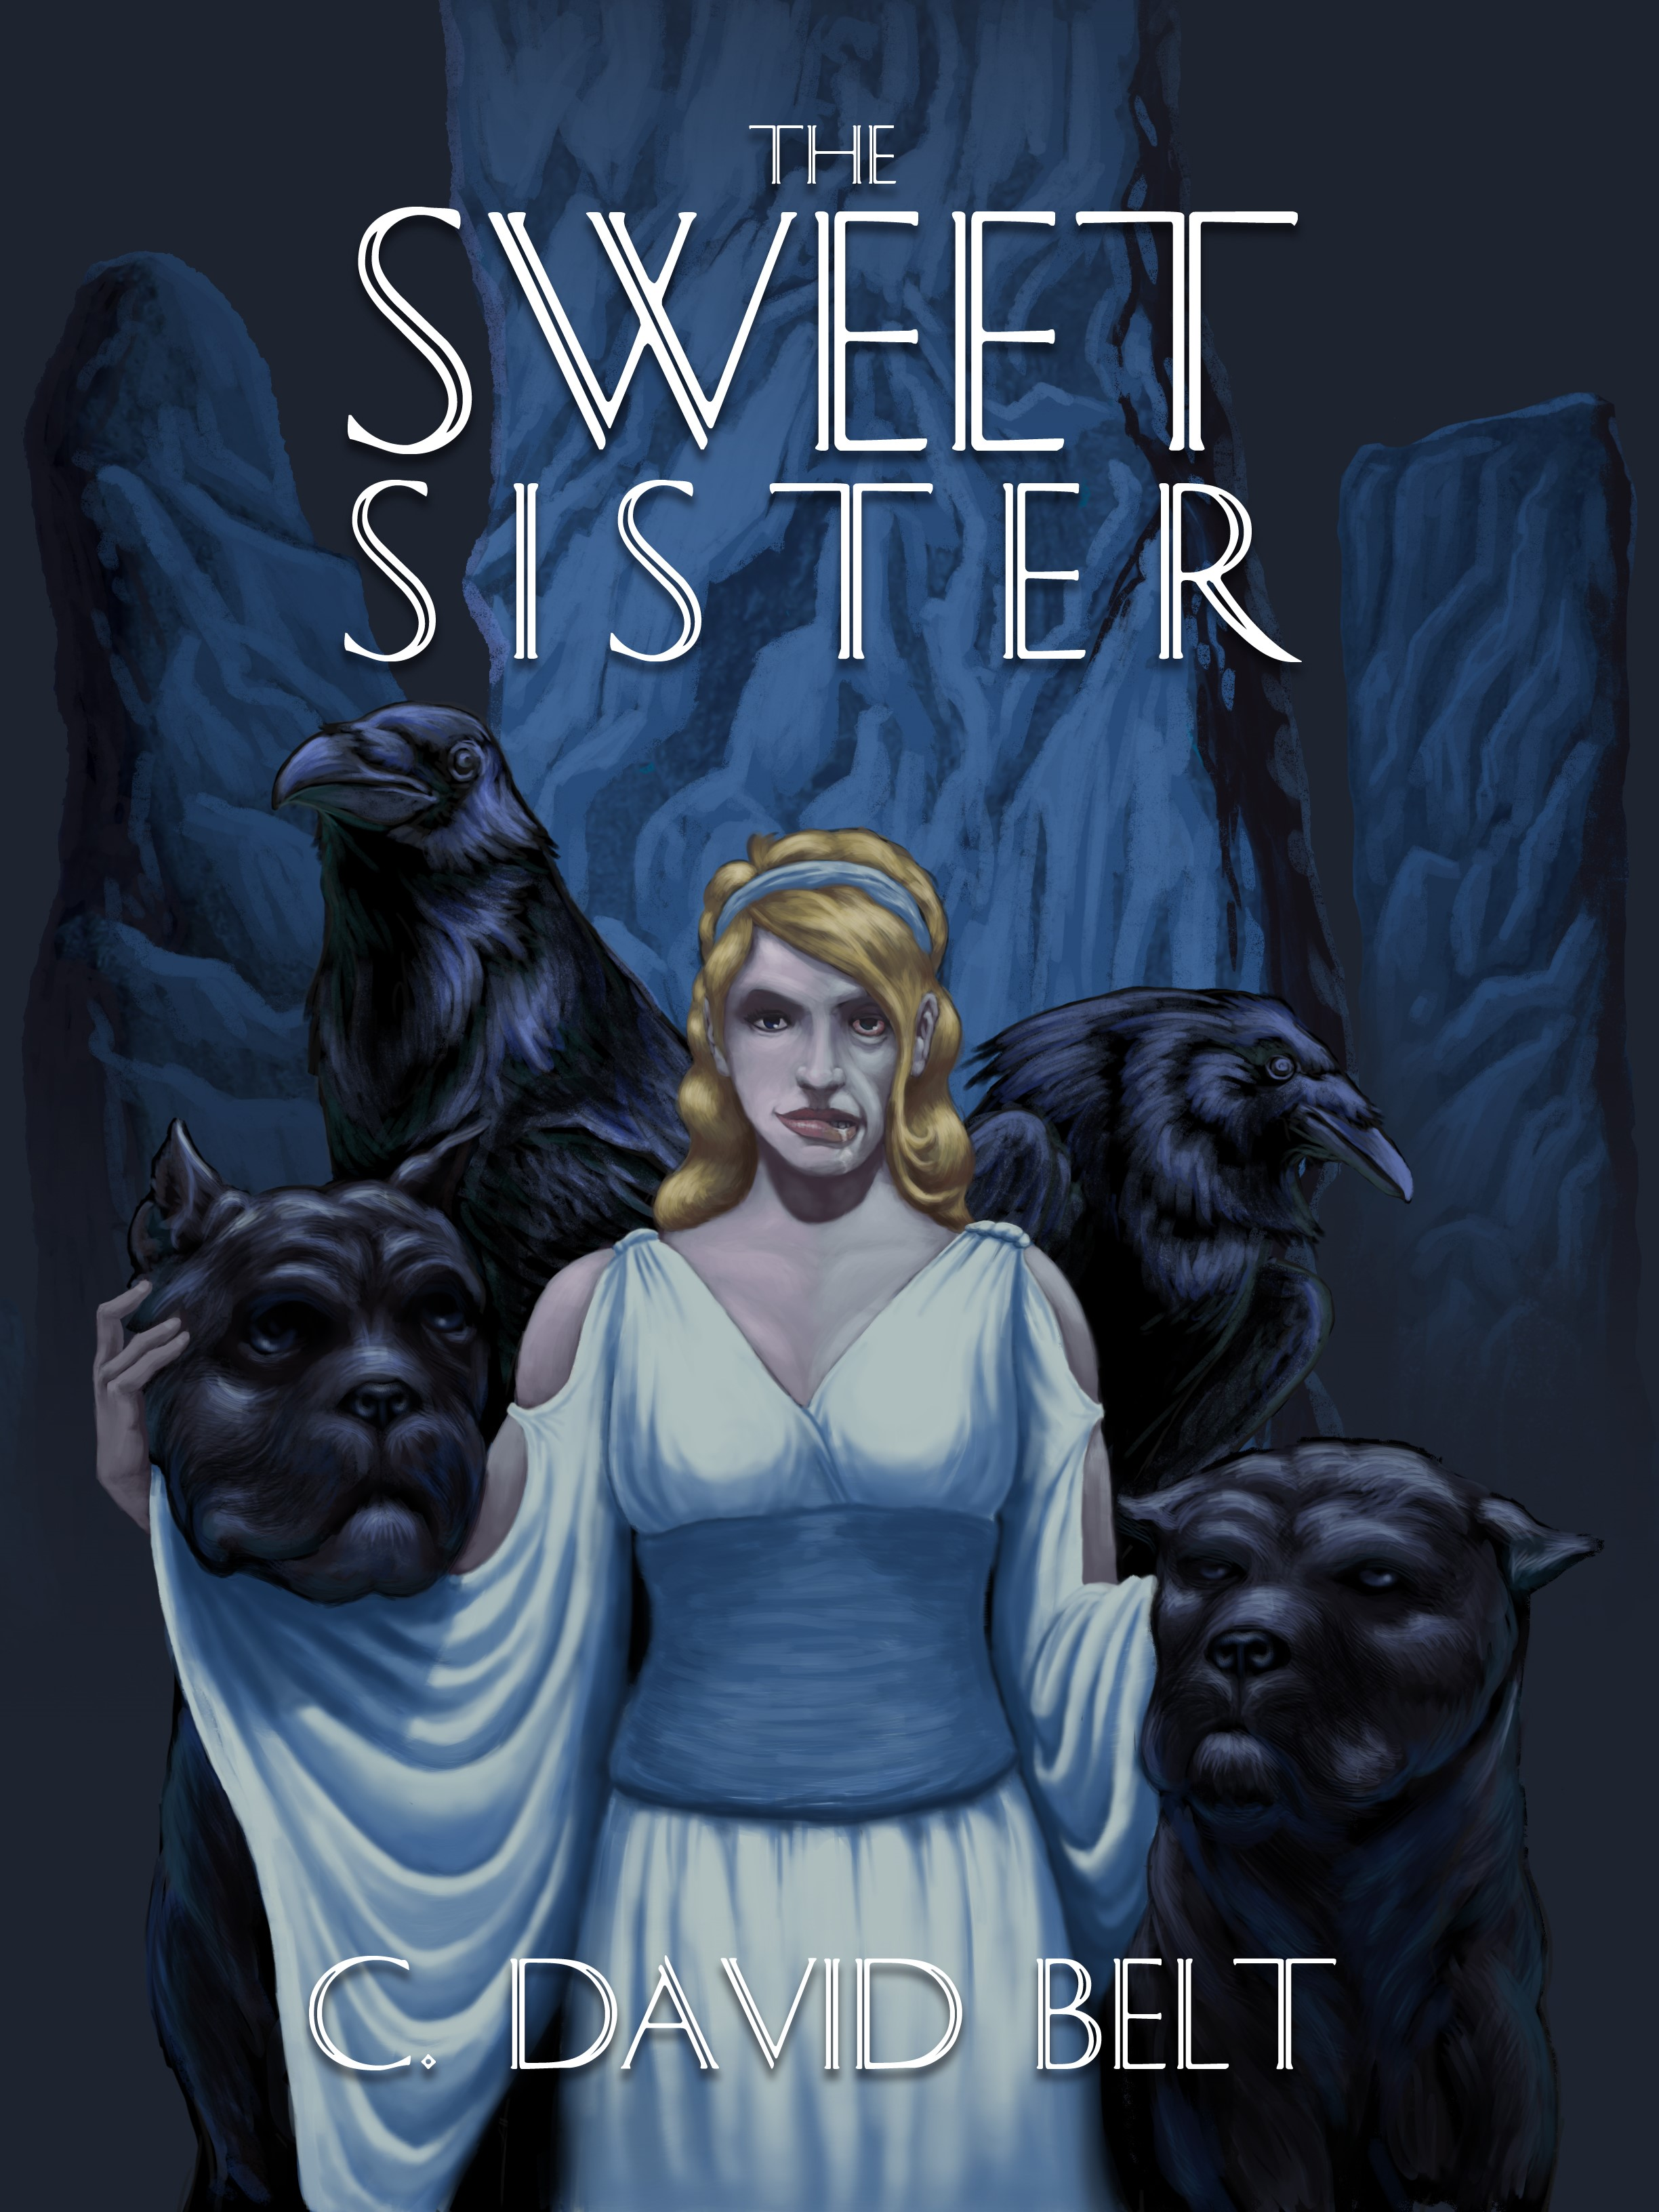 About The Sweet Sister